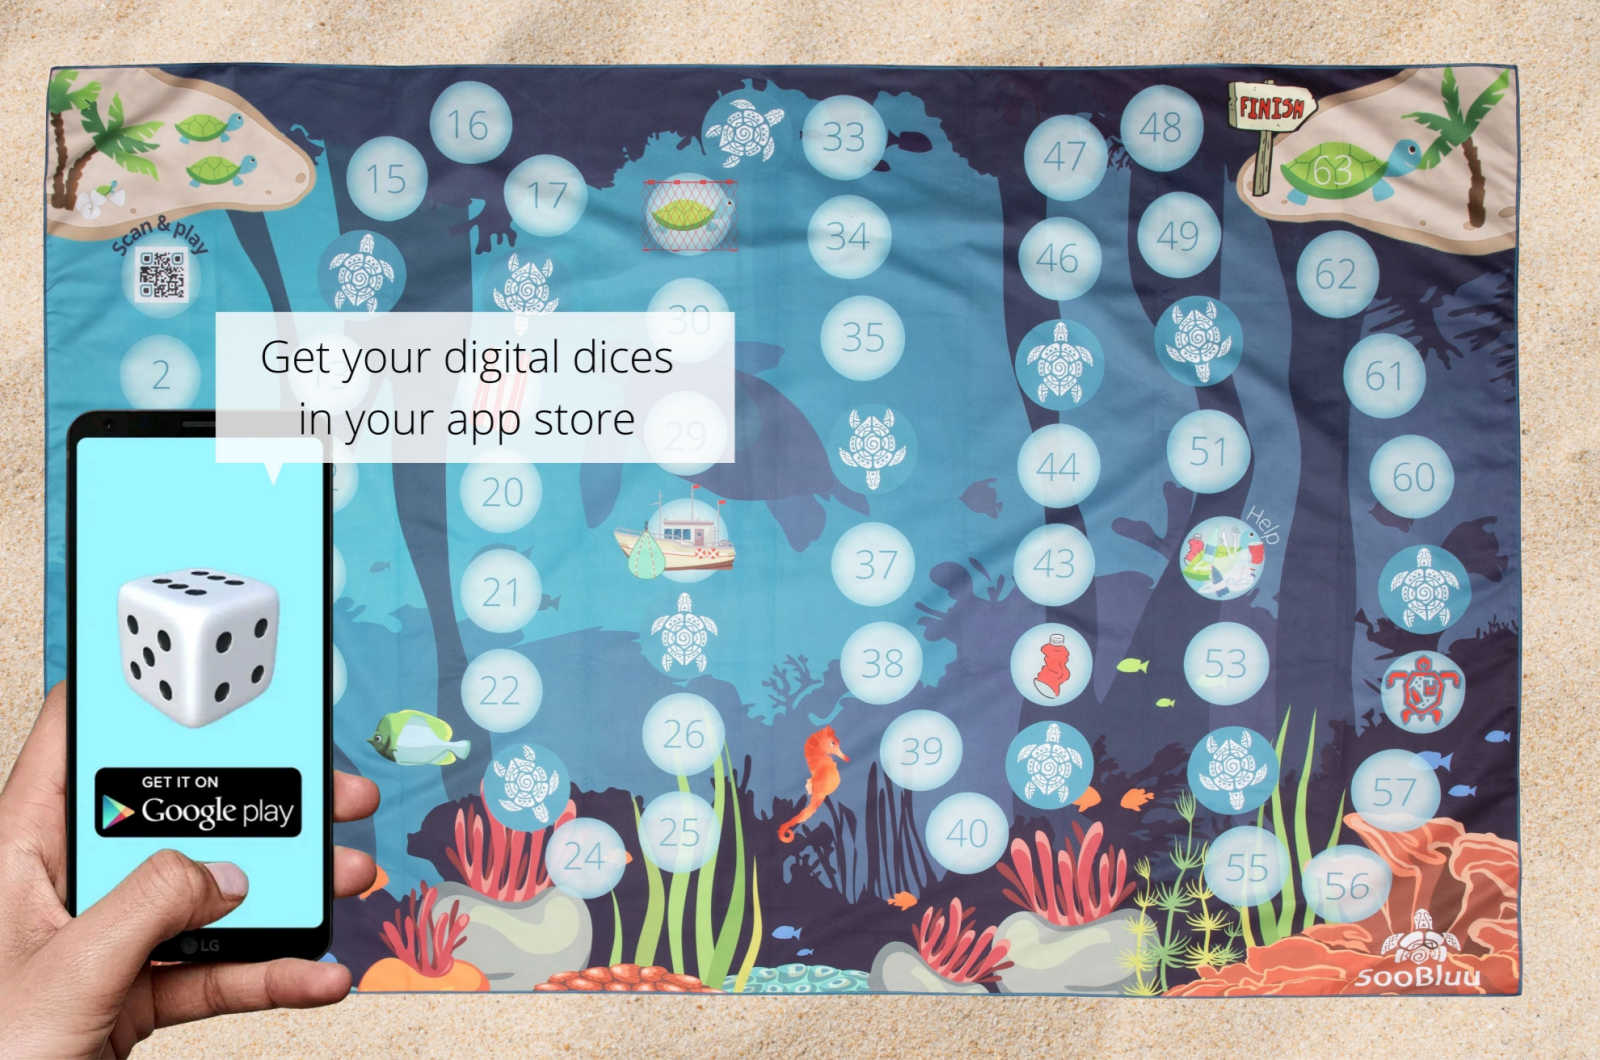 Get-your-digital-dices-by-your-app-store-1.jpg